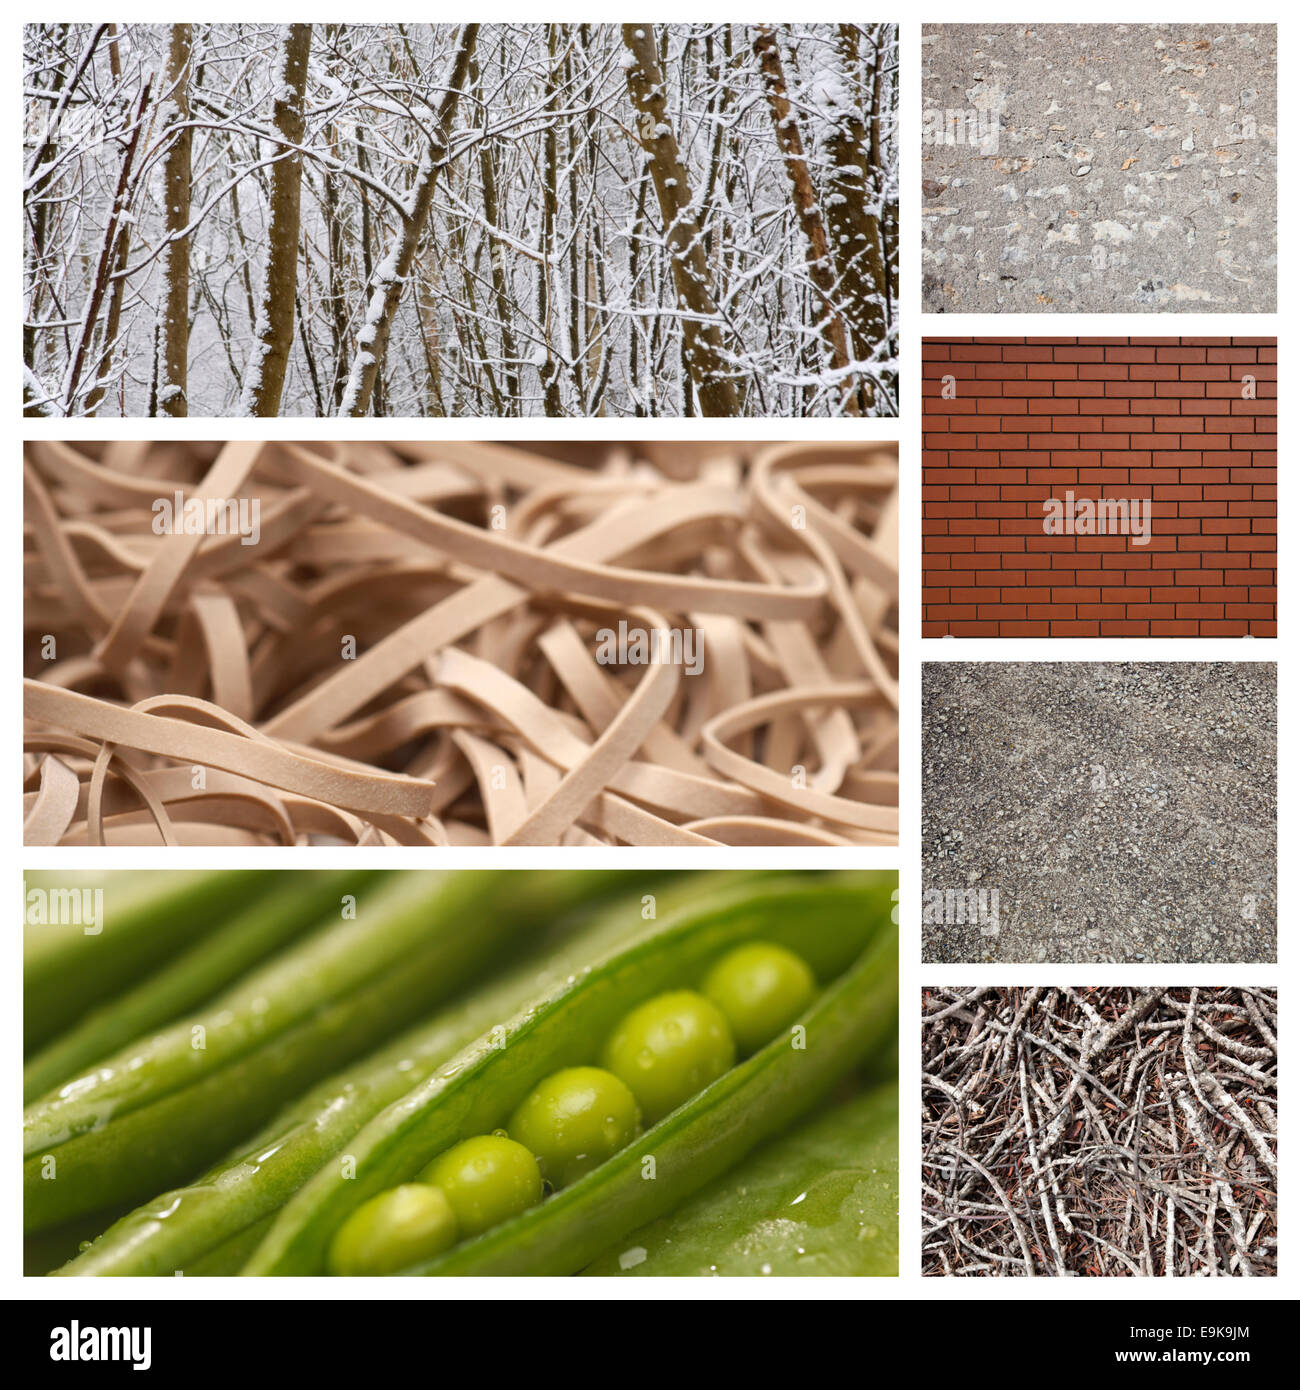 Computer imaging of nature with brick wall and rubber bands - Stock Image